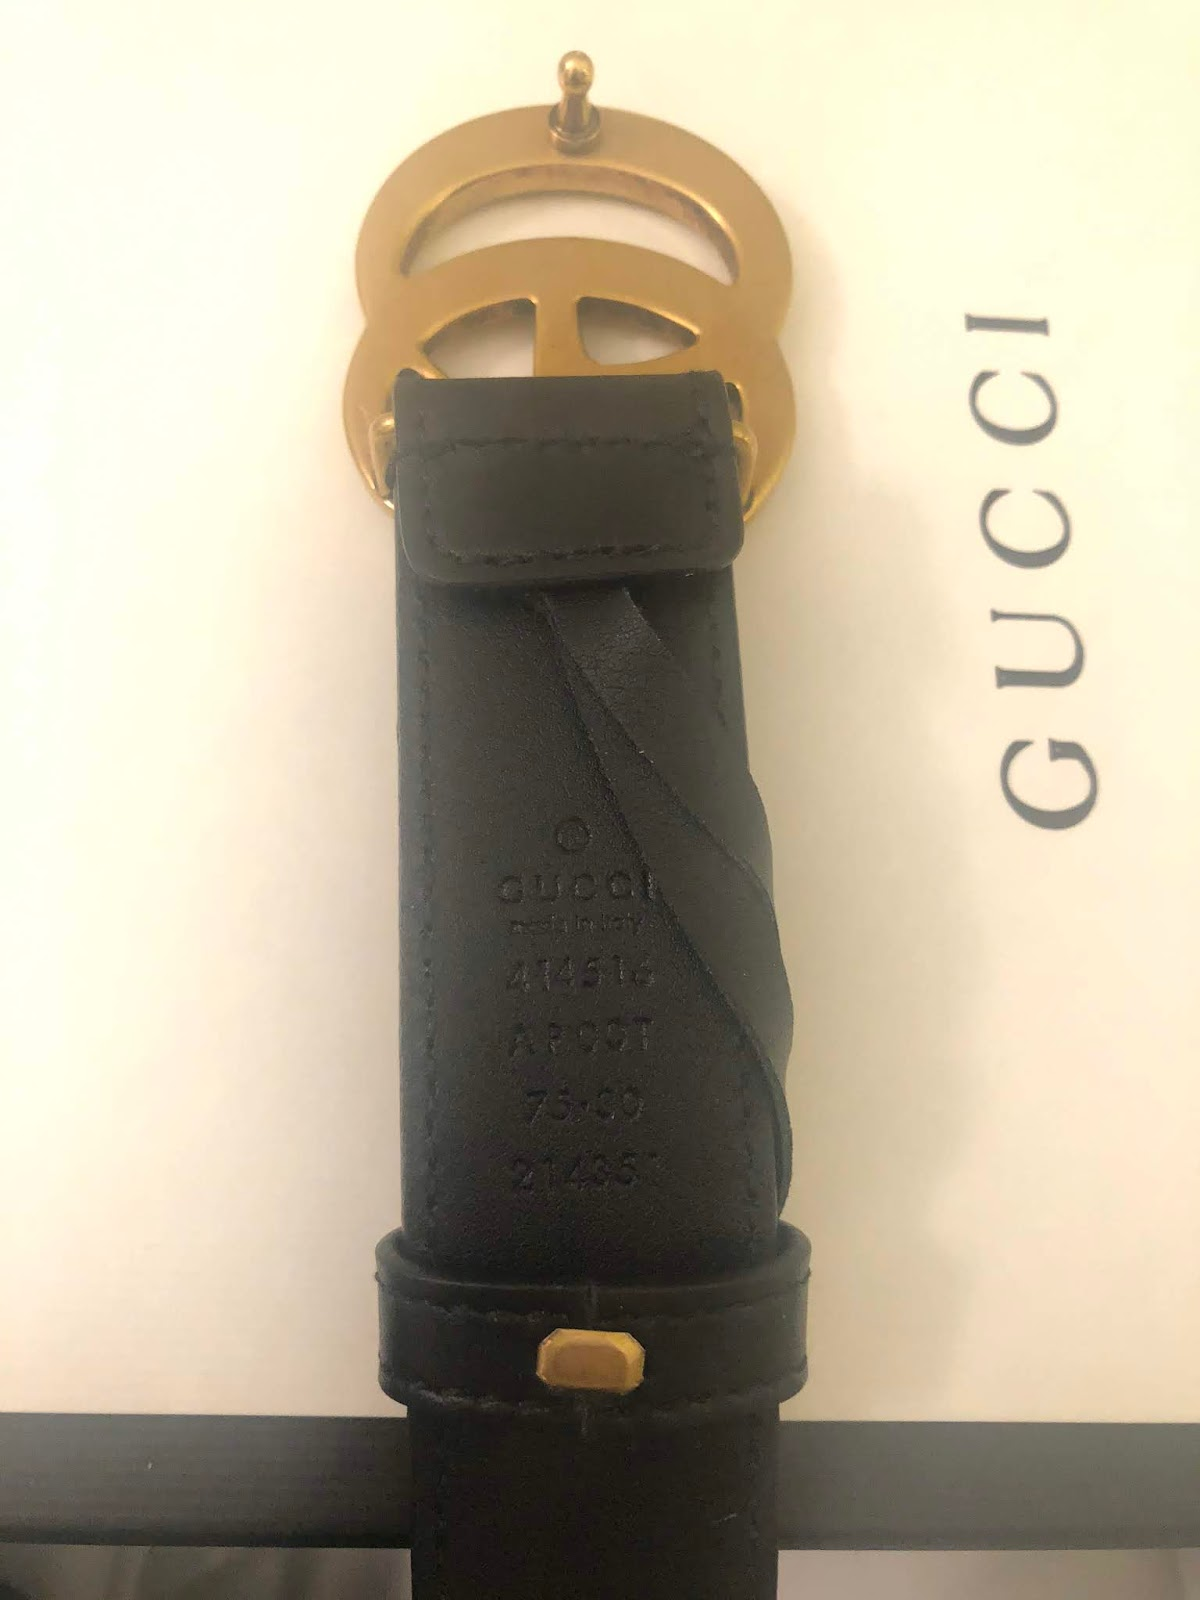 ecd2b11c51f 12 Ways To Tell if Your Gucci Belt is Fake - Her Closet Image